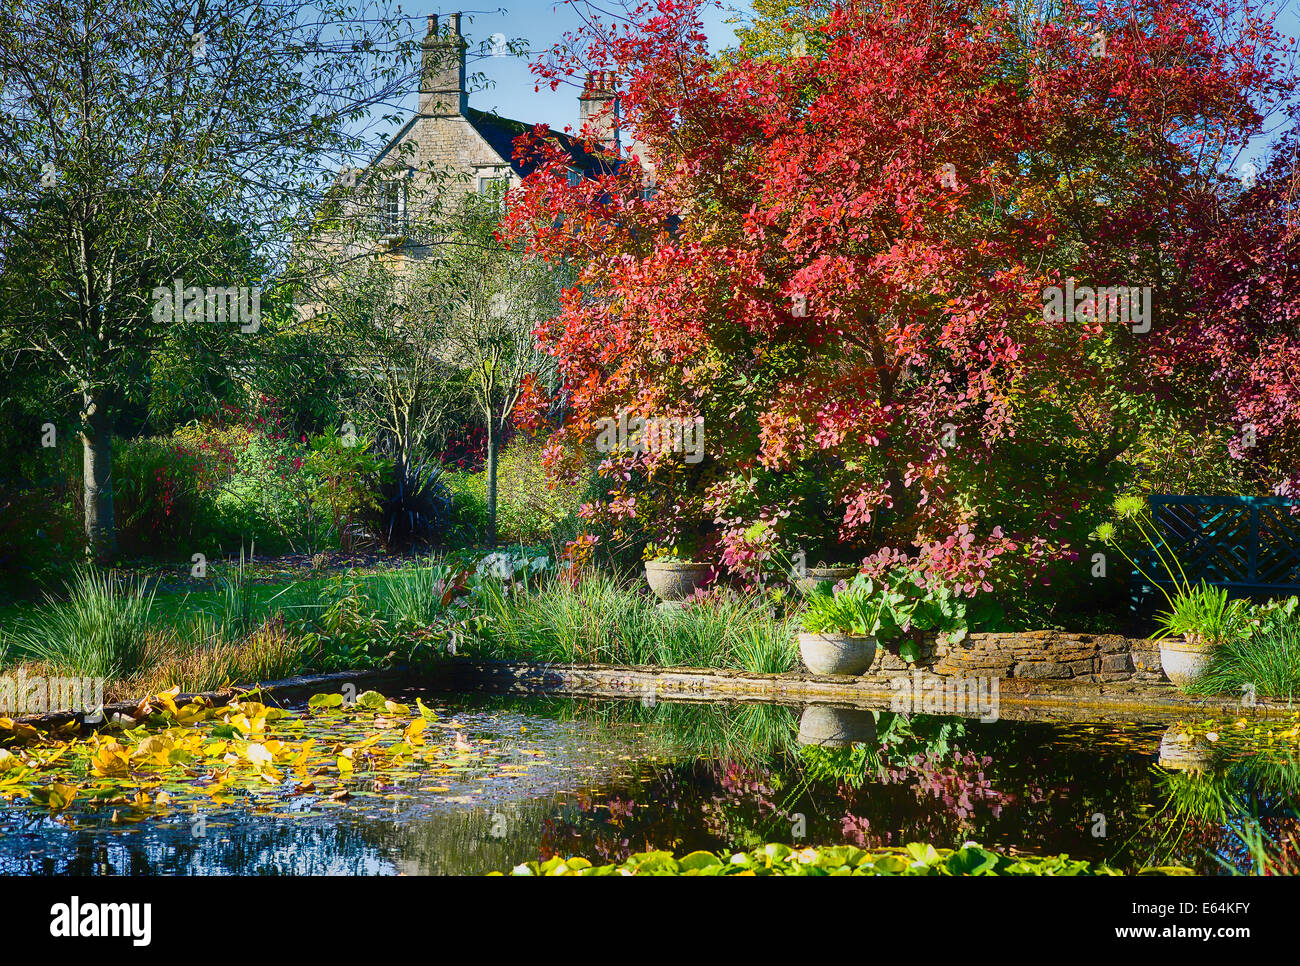 The Courts garden with pool and cotinus trees in autumn - Stock Image